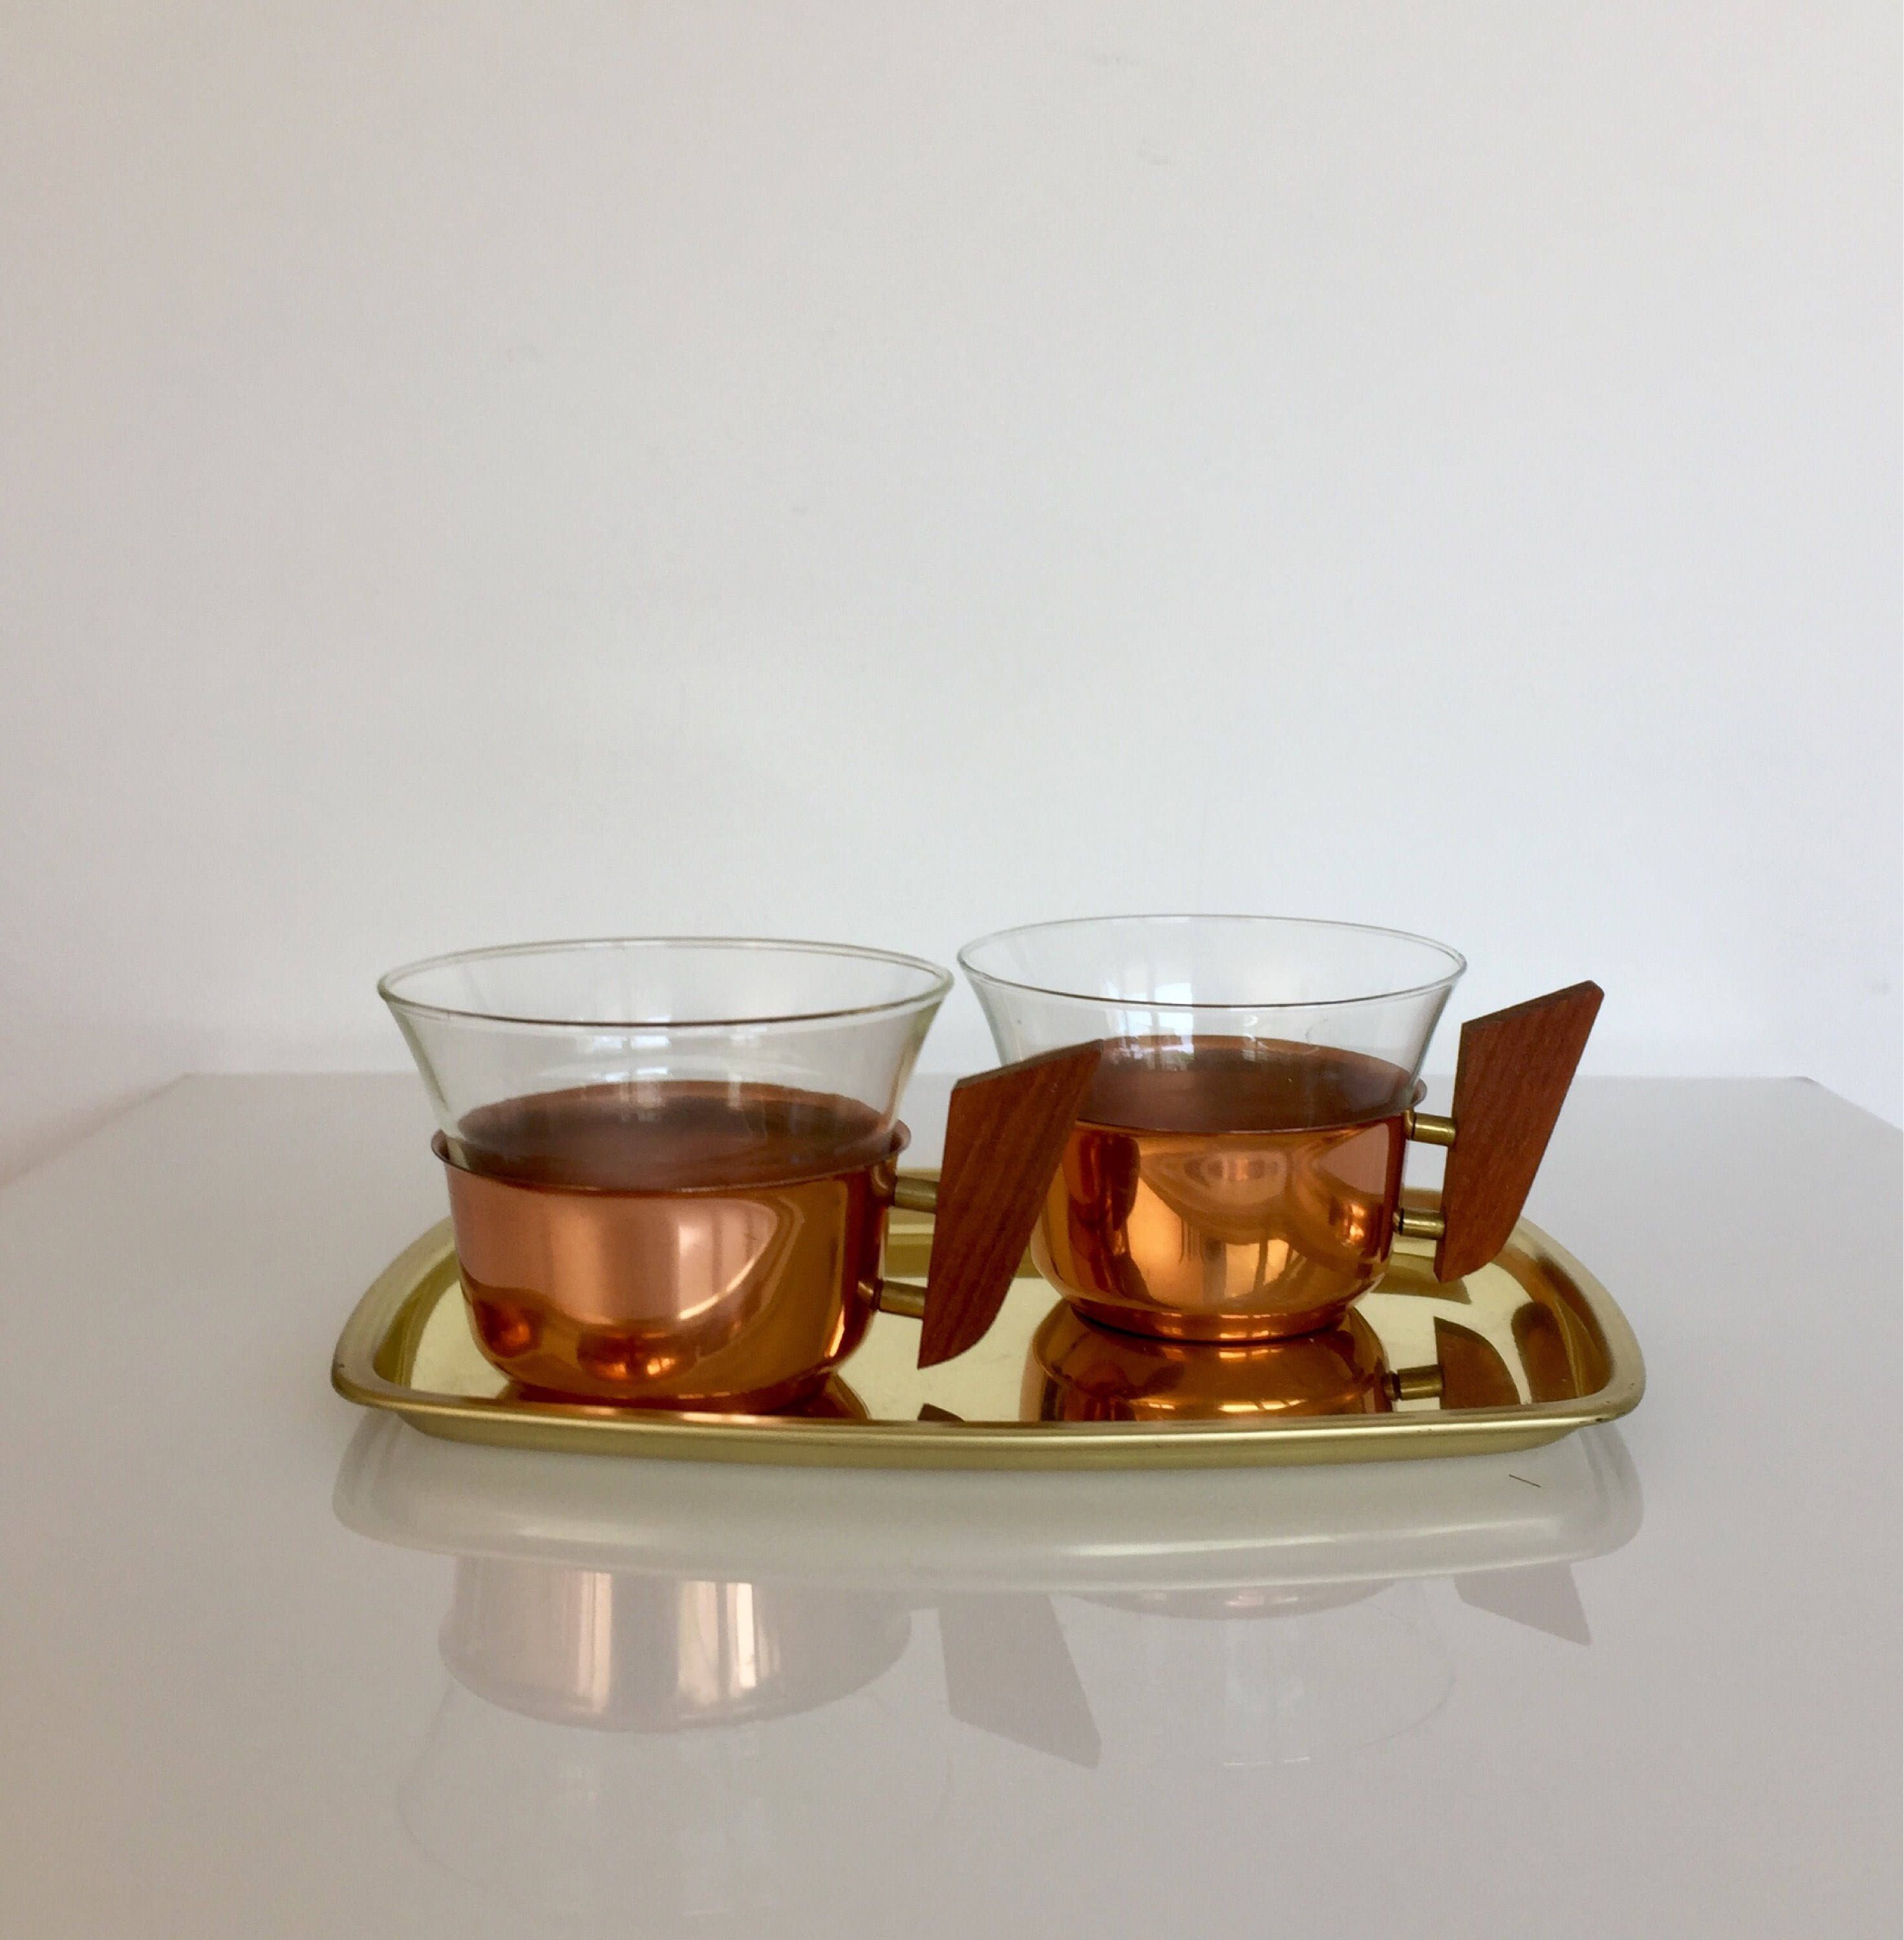 Teetassen Aus Glas Mid Century 60 S Tea Cups Made Of Copper With Glass Inserts On The